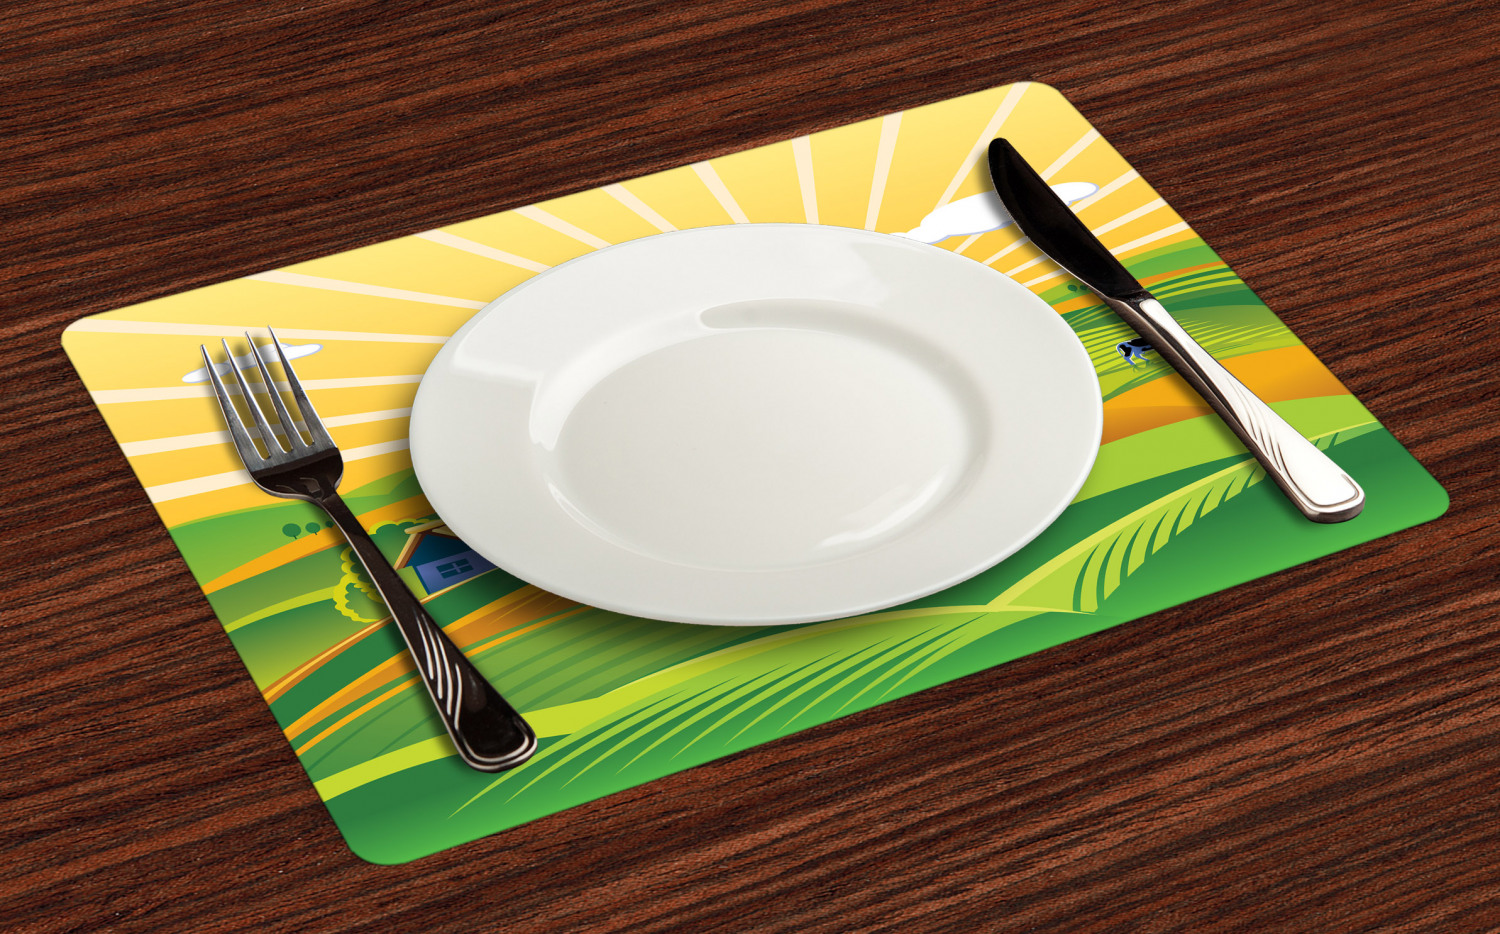 Ambesonne-Fabric-Place-Mats-Set-of-4-Placemats-for-Dining-Room-and-Kitchen-Table thumbnail 41